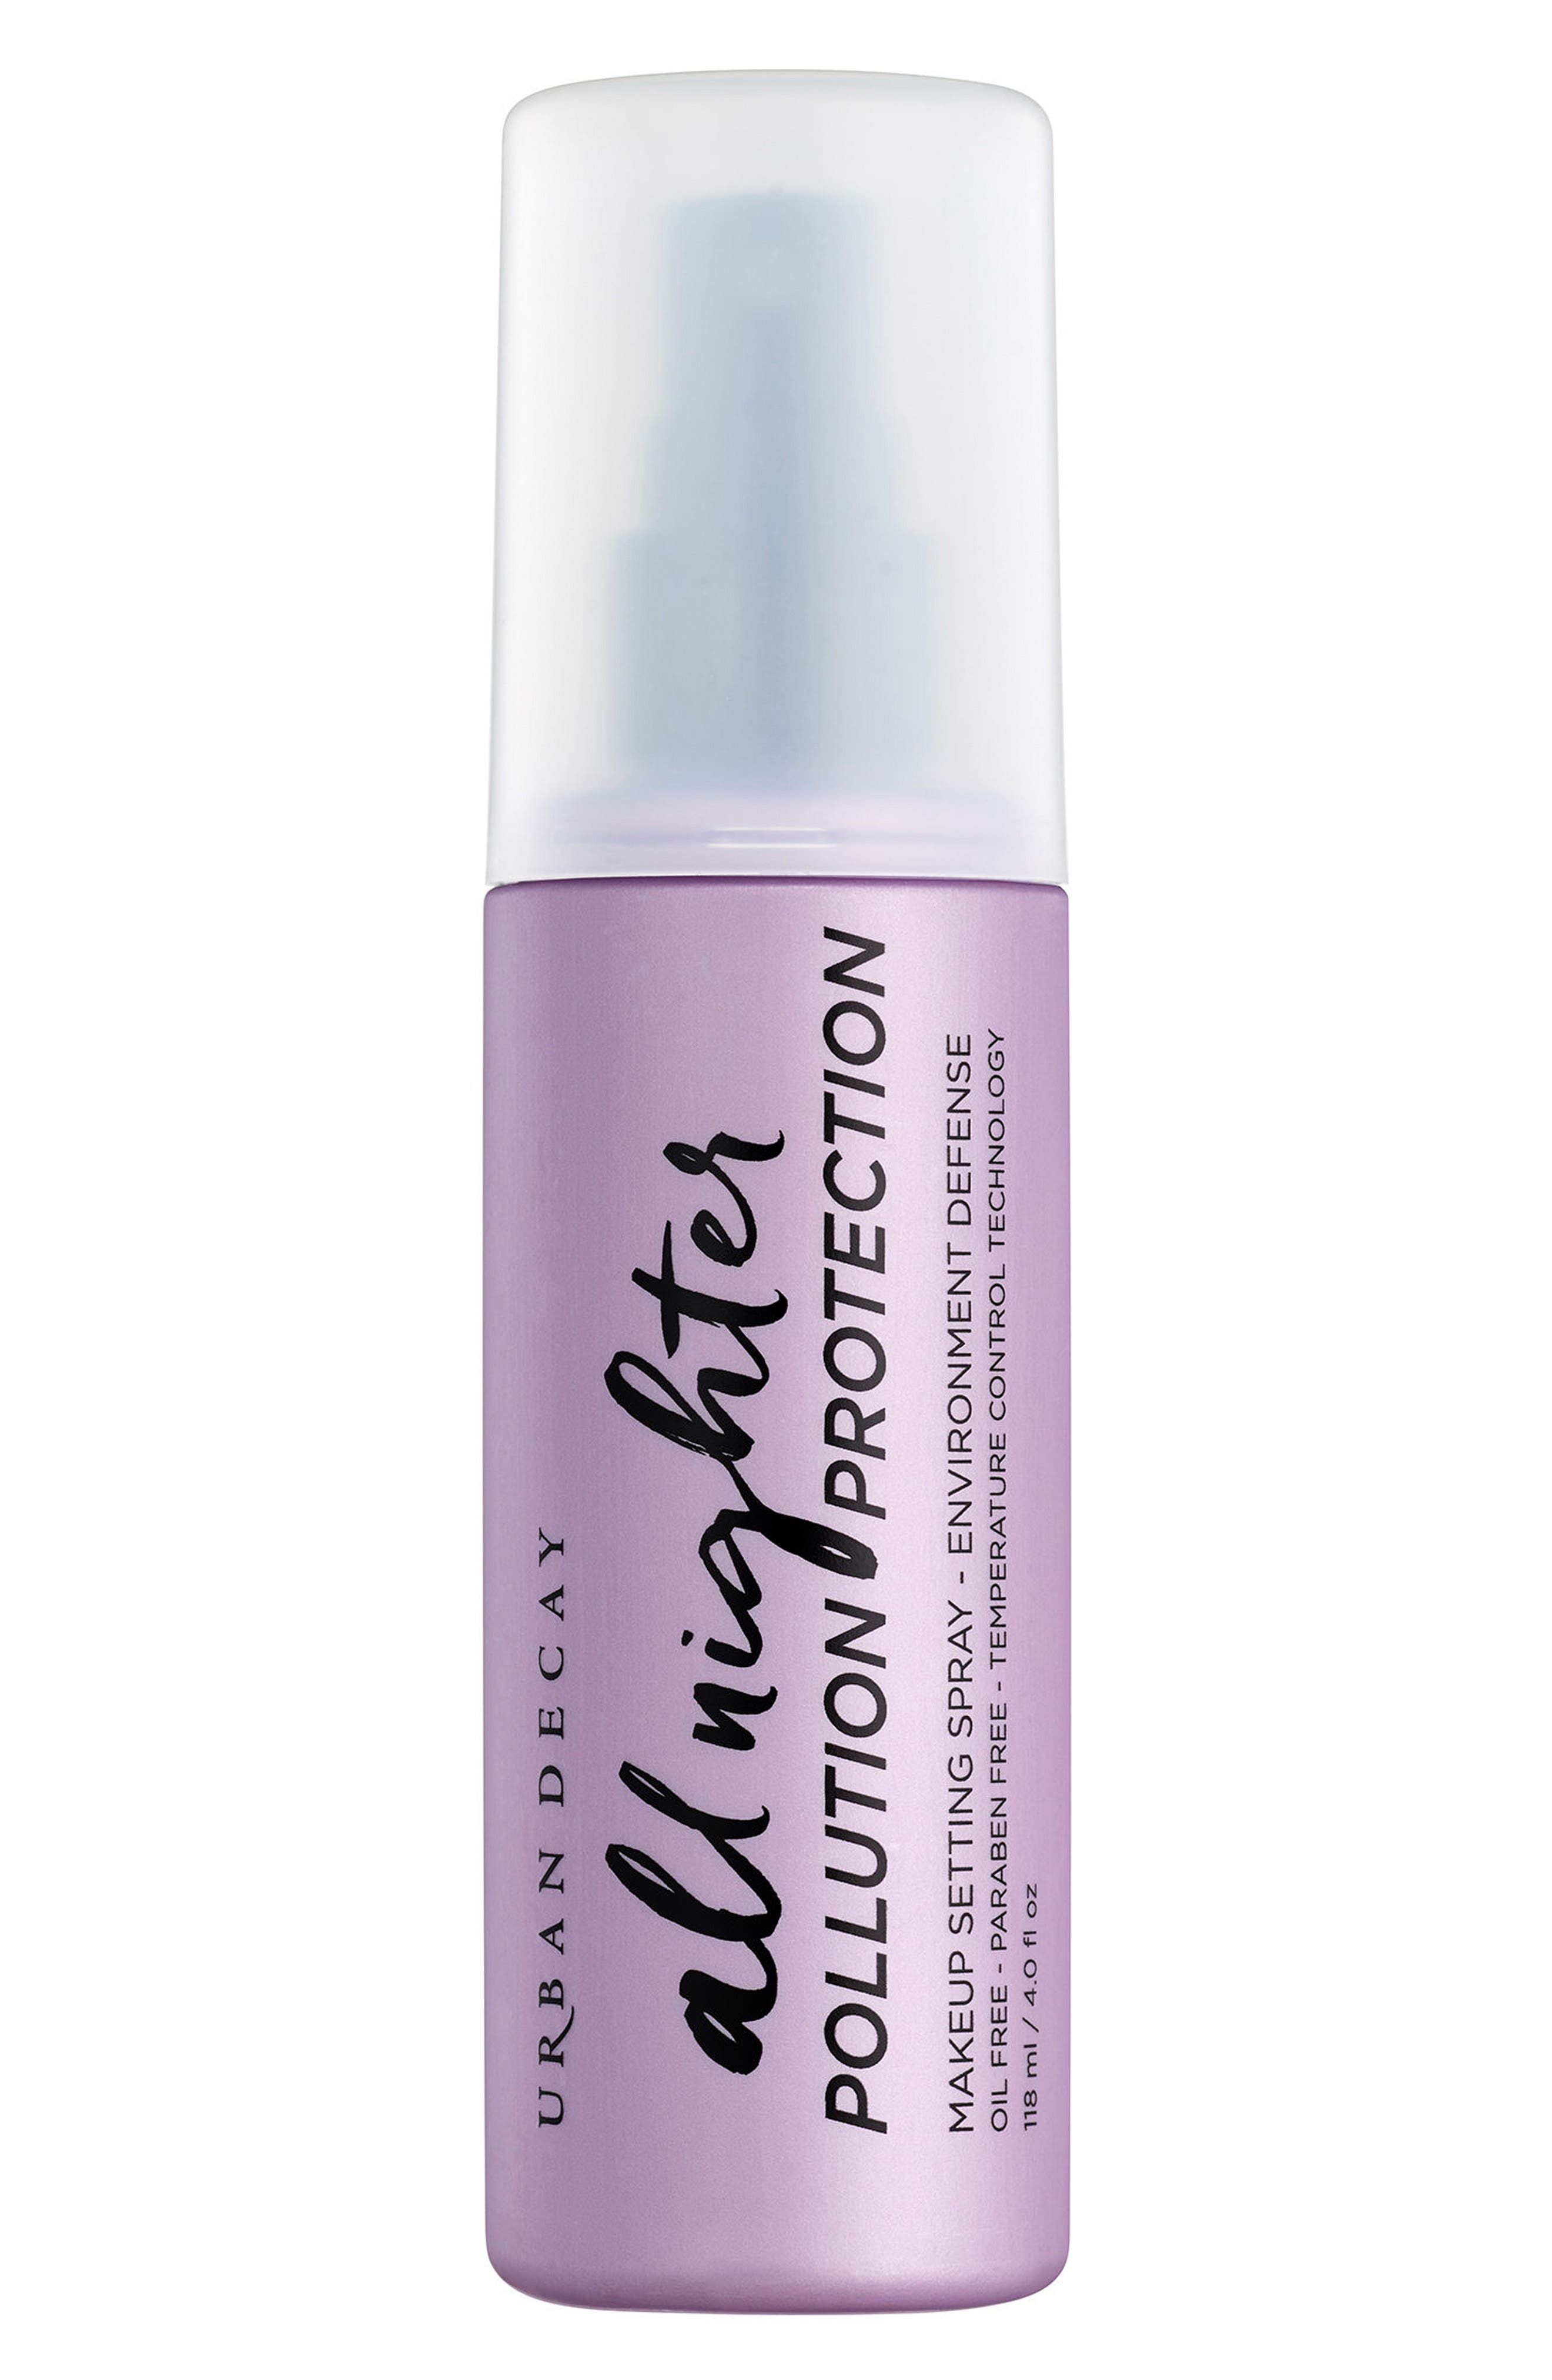 Alternate Image 1 Selected - Urban Decay All Nighter Pollution Protection Environmental Defense Makeup Setting Spray